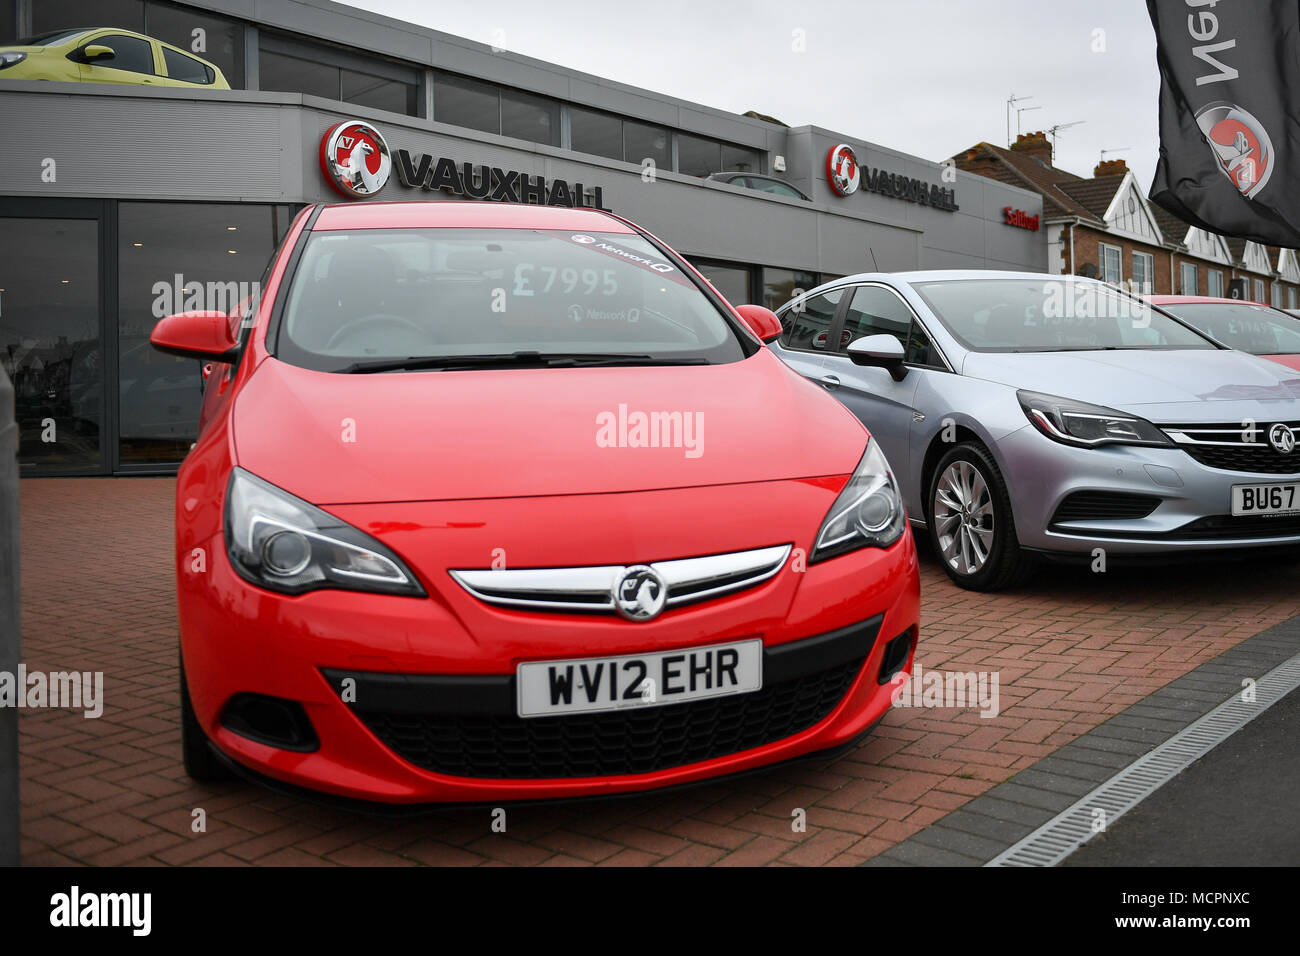 Dealerships That Buy Cars >> A General View Of Vauxhall Forecourt After The Company